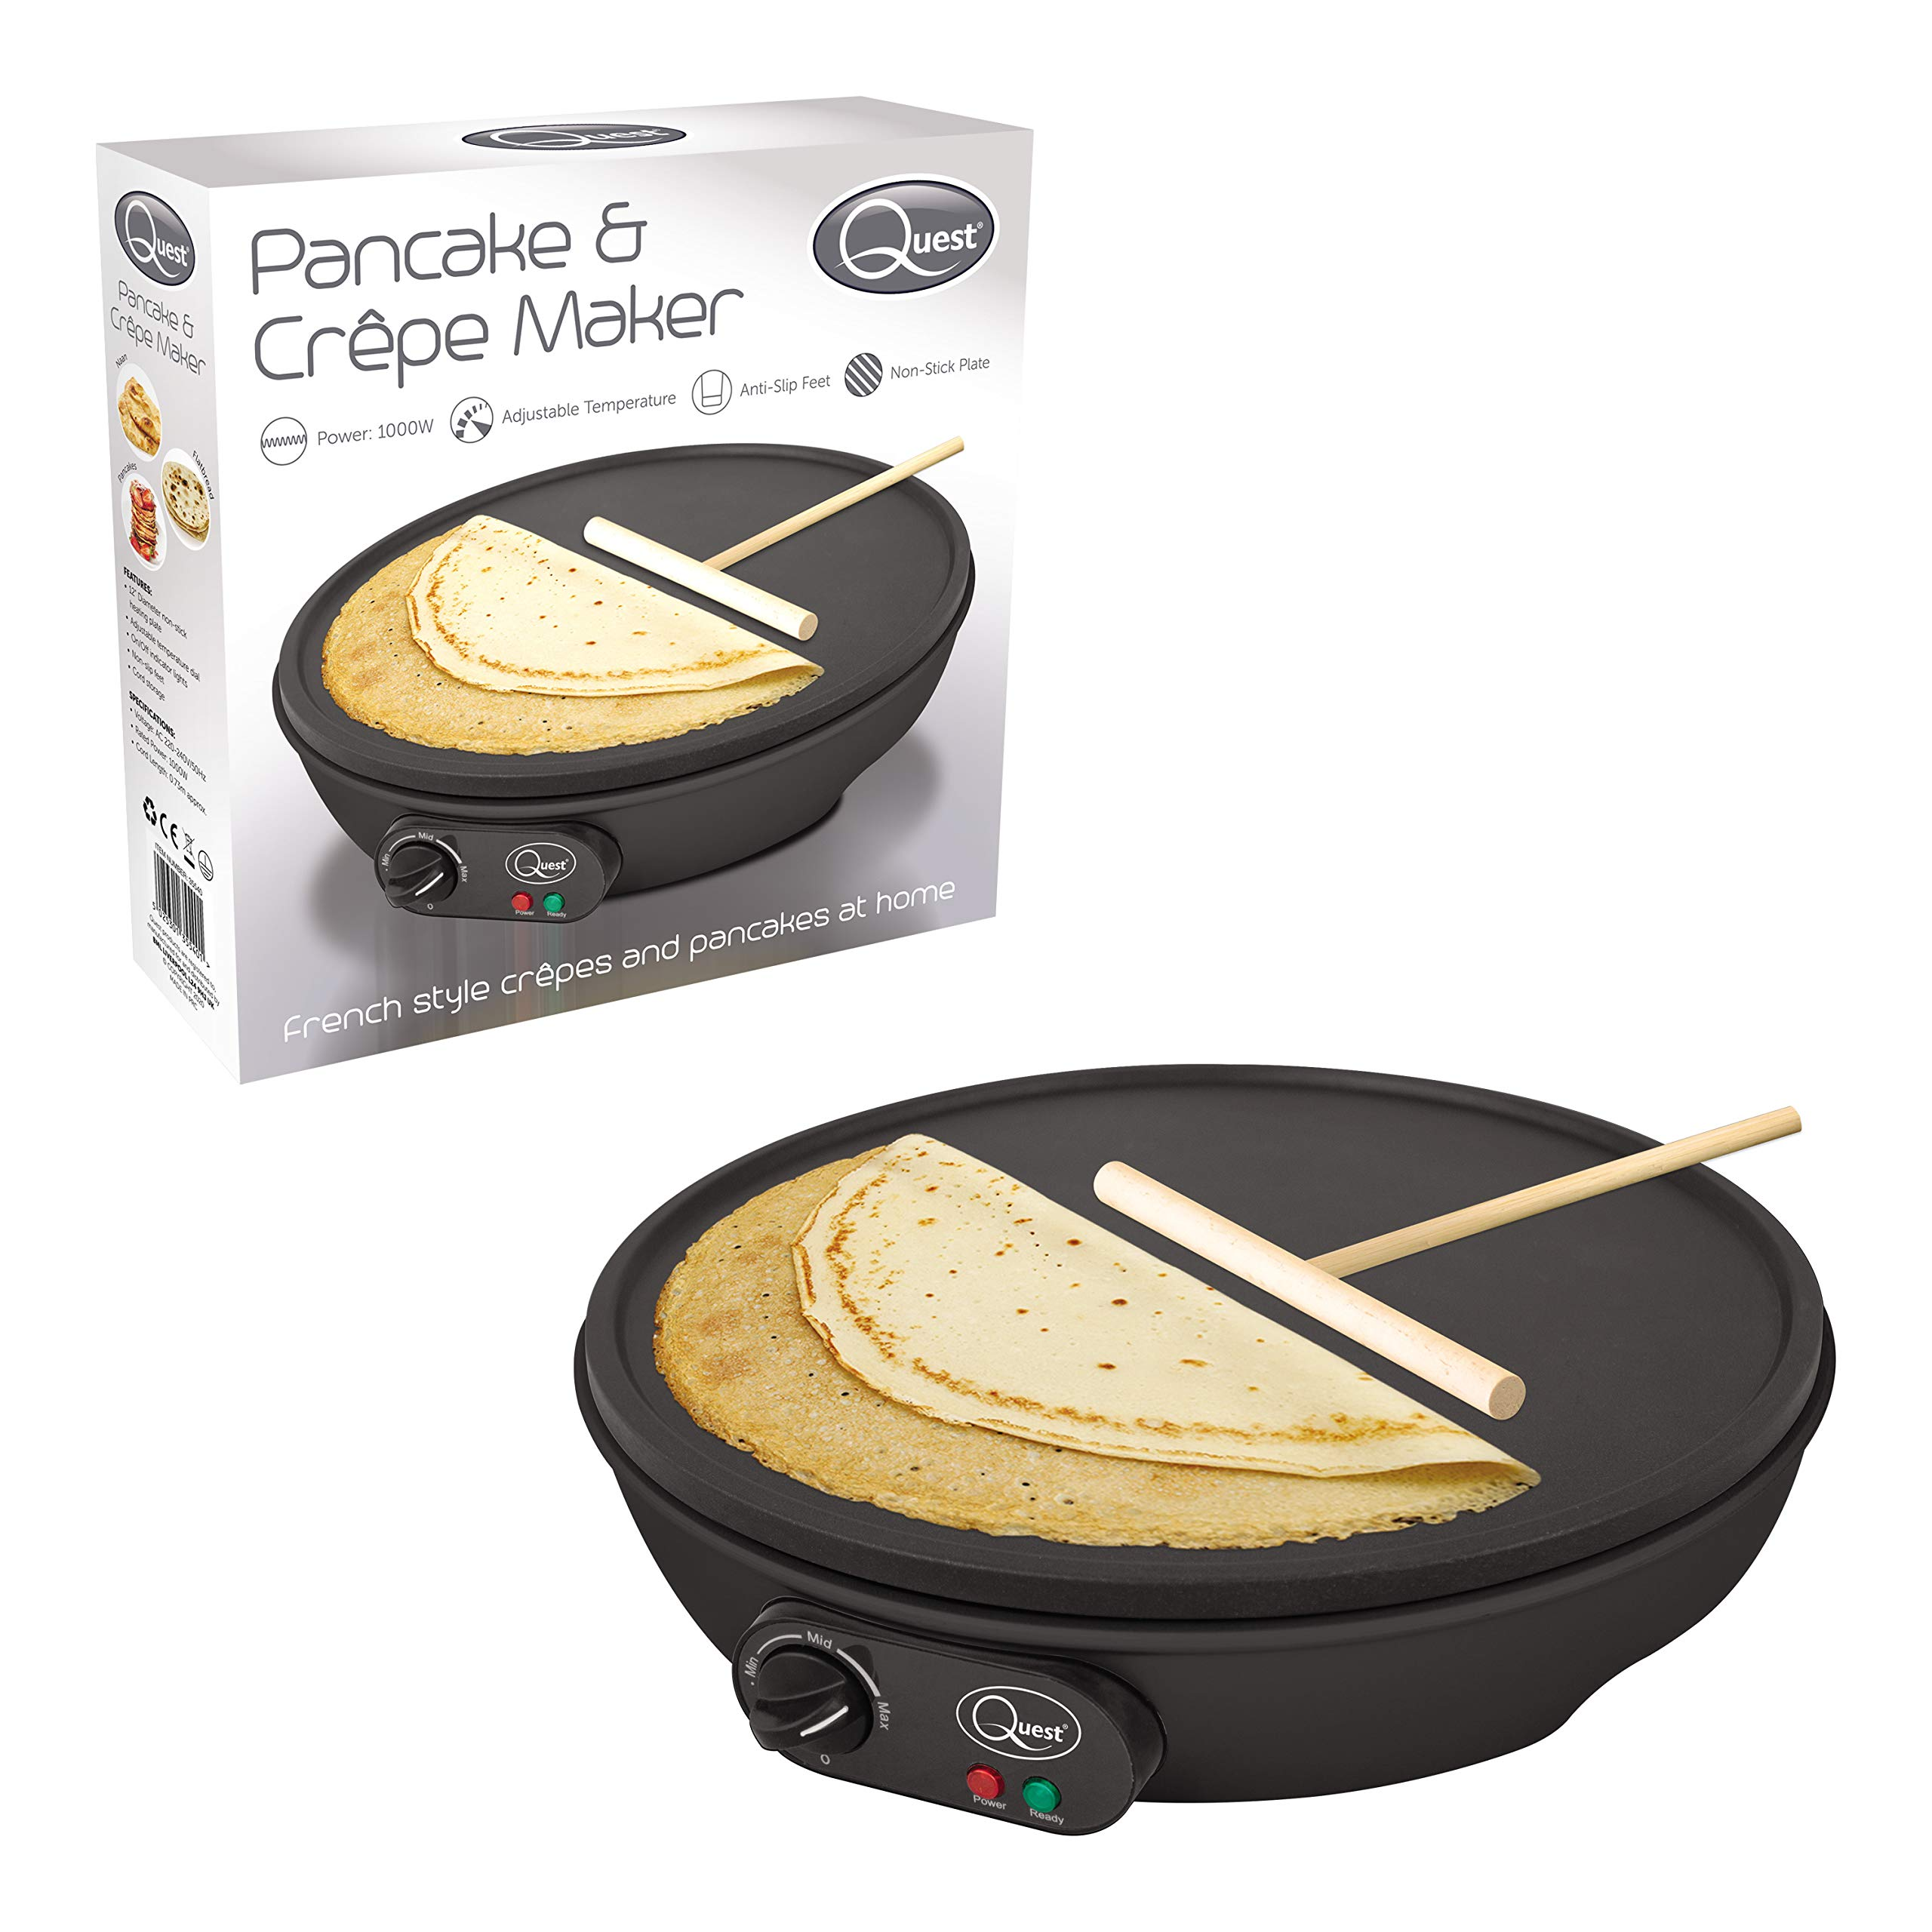 "Quest 35540 Electric Pancake & Crepe Maker / 12"" Non-Stick Hot Plate With Raised Edges For Reduced Wastage / Adjustable Temperature / Wooden Spreader & Spatula Included / 1000W"